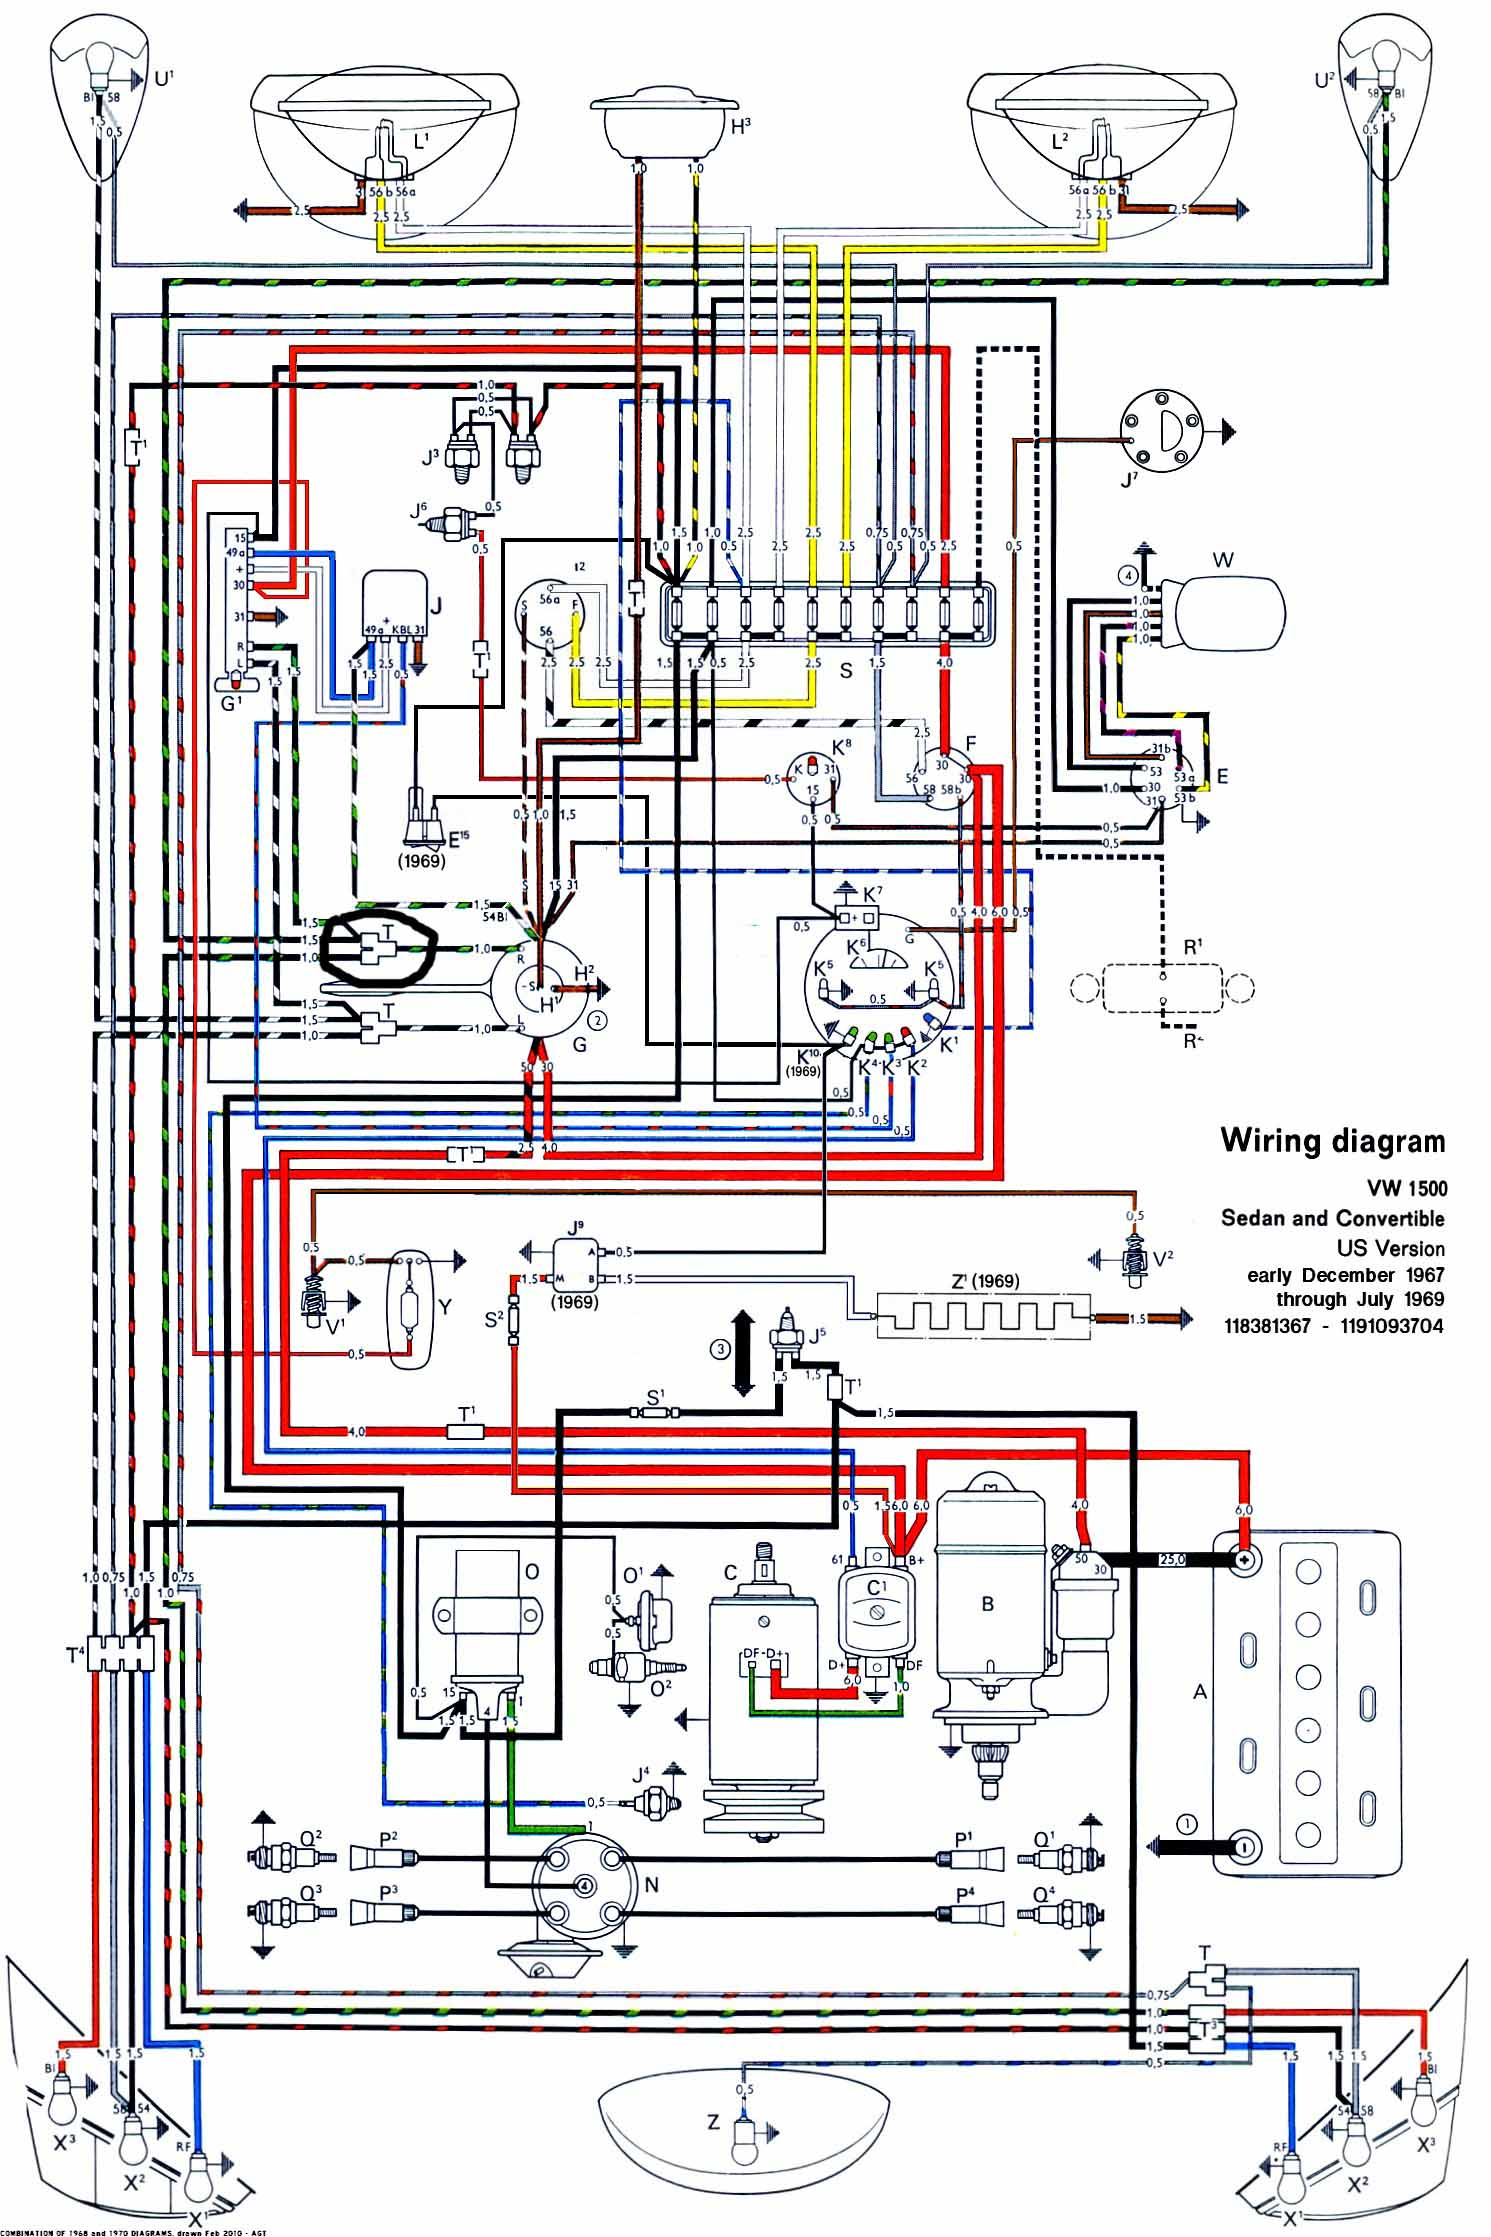 Vw Headlight Switch Wiring Diagram : Wiring diagram for vw beetle the